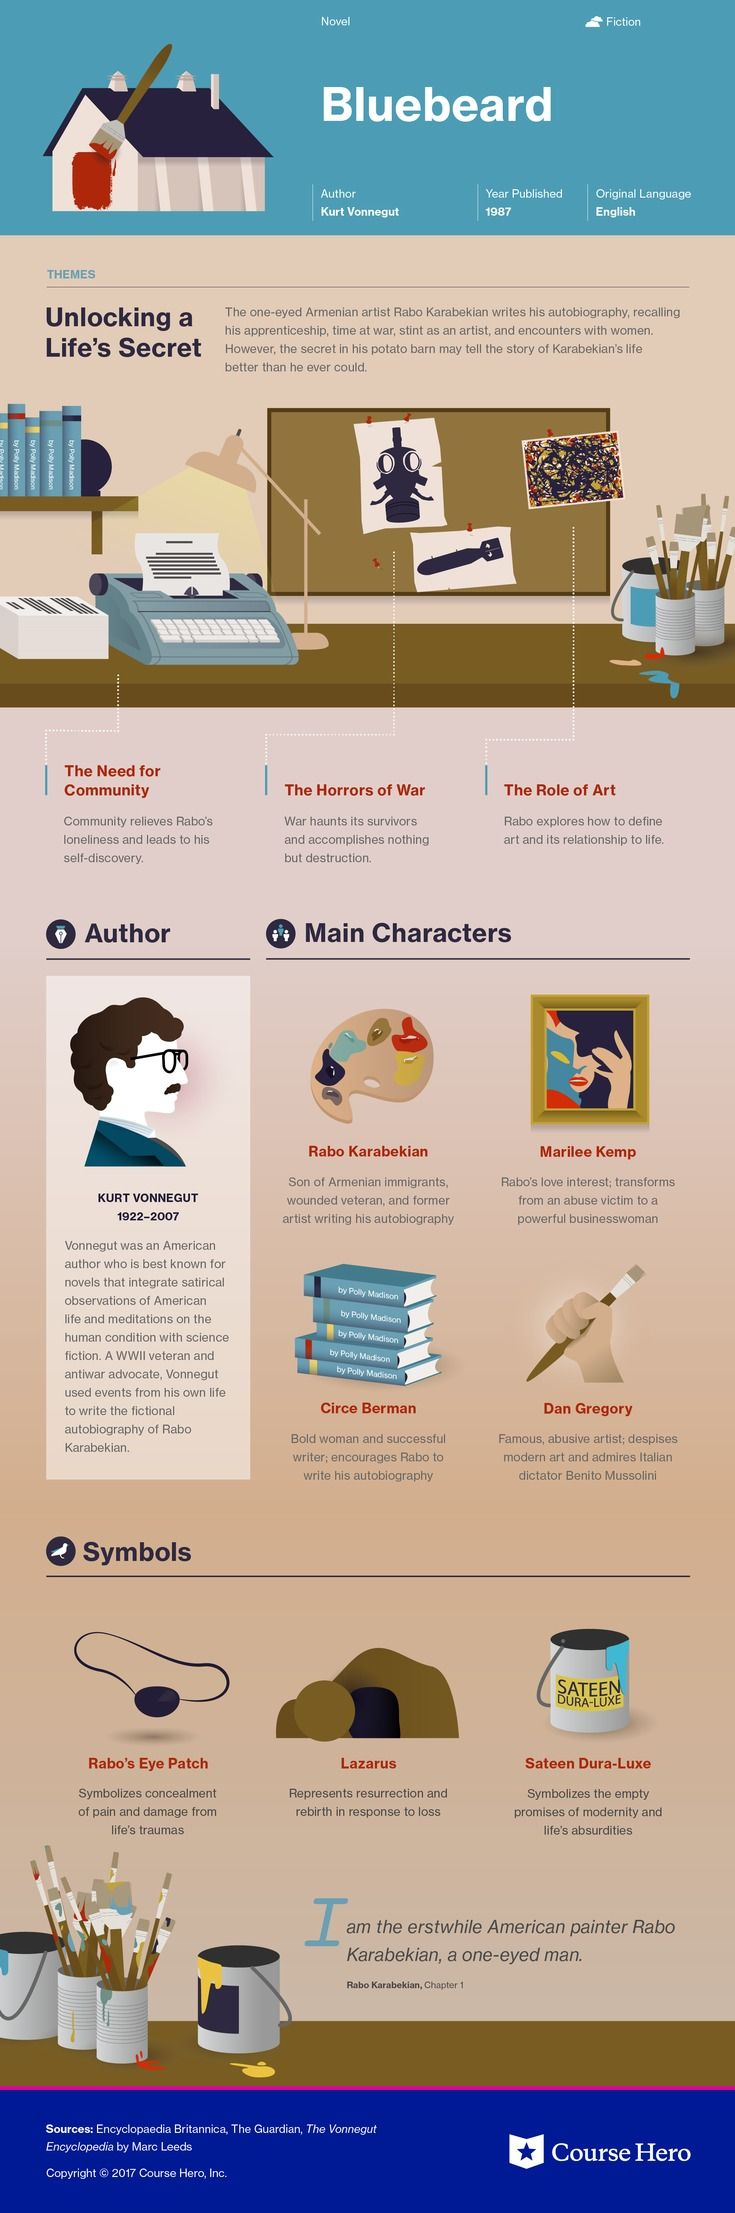 Bluebeard Study Guide | Literature Infographics created by